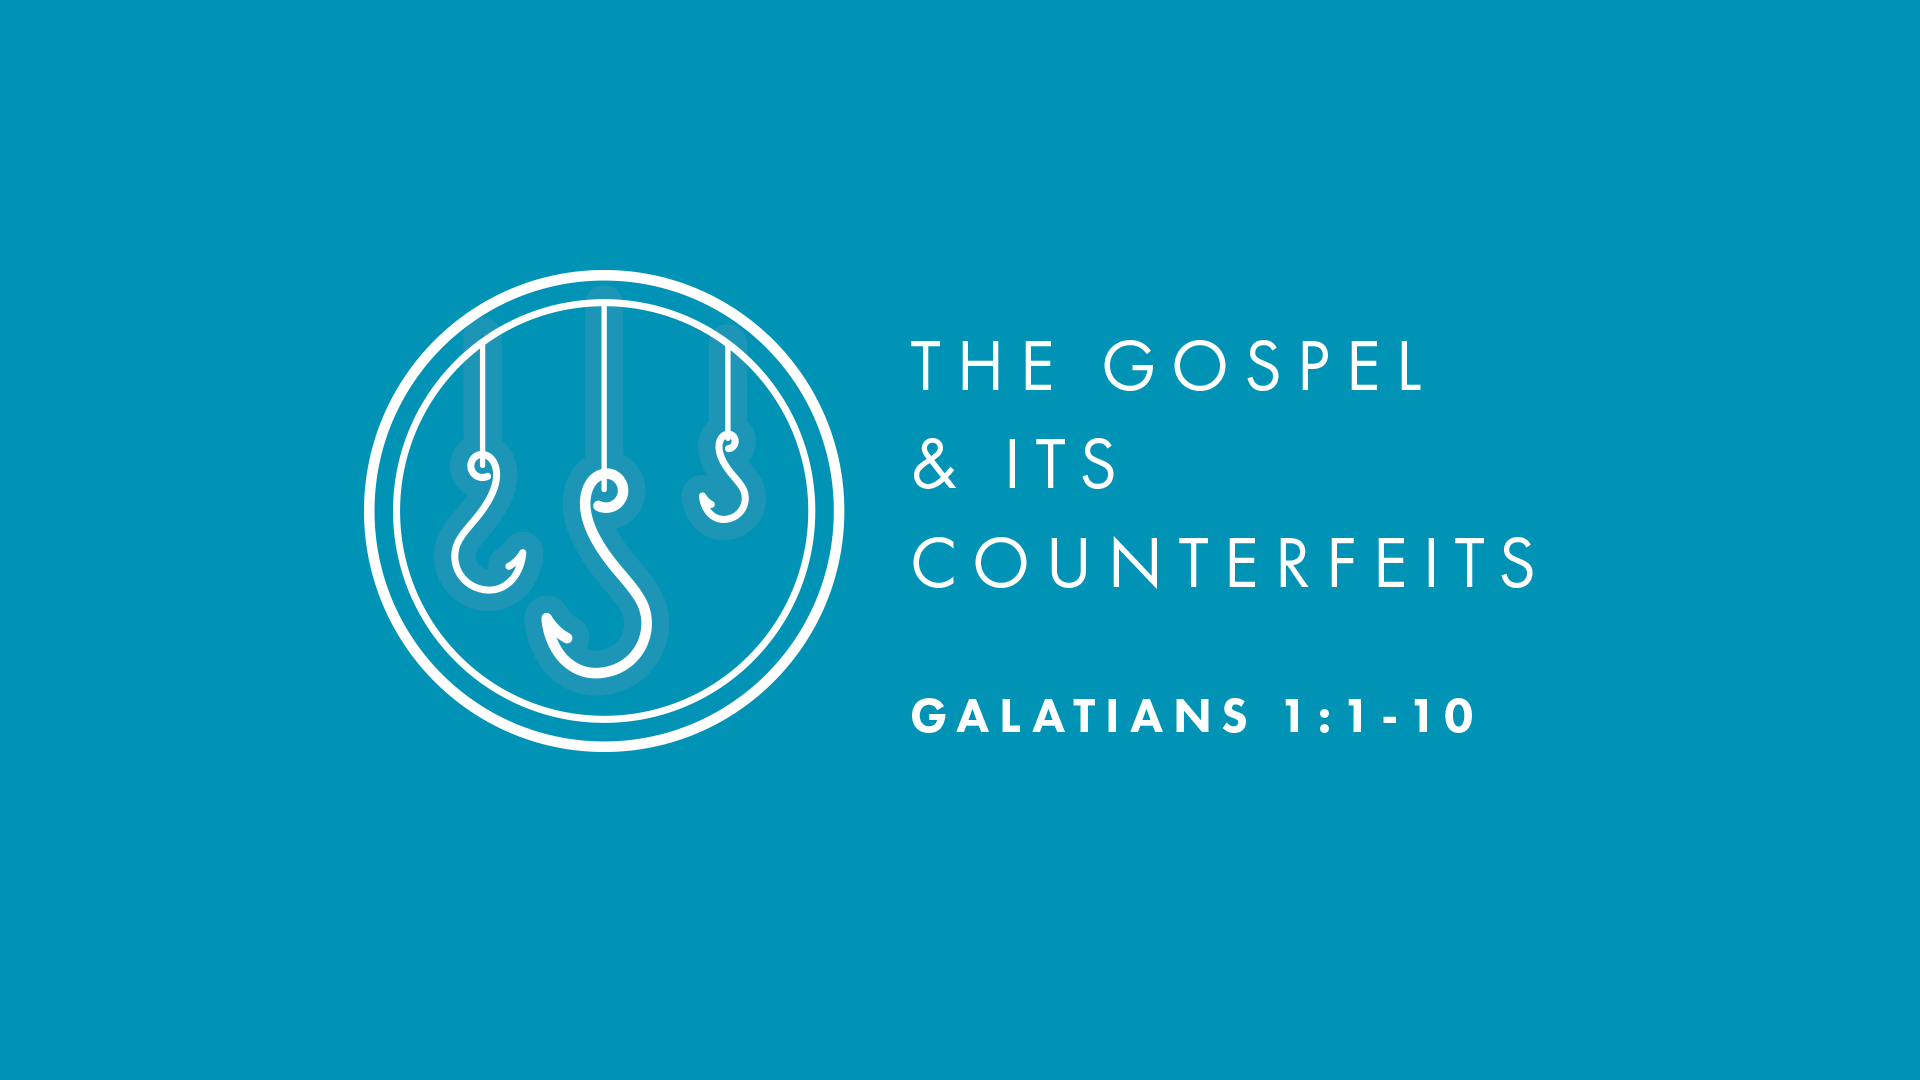 The Gospel and Its Counterfeits